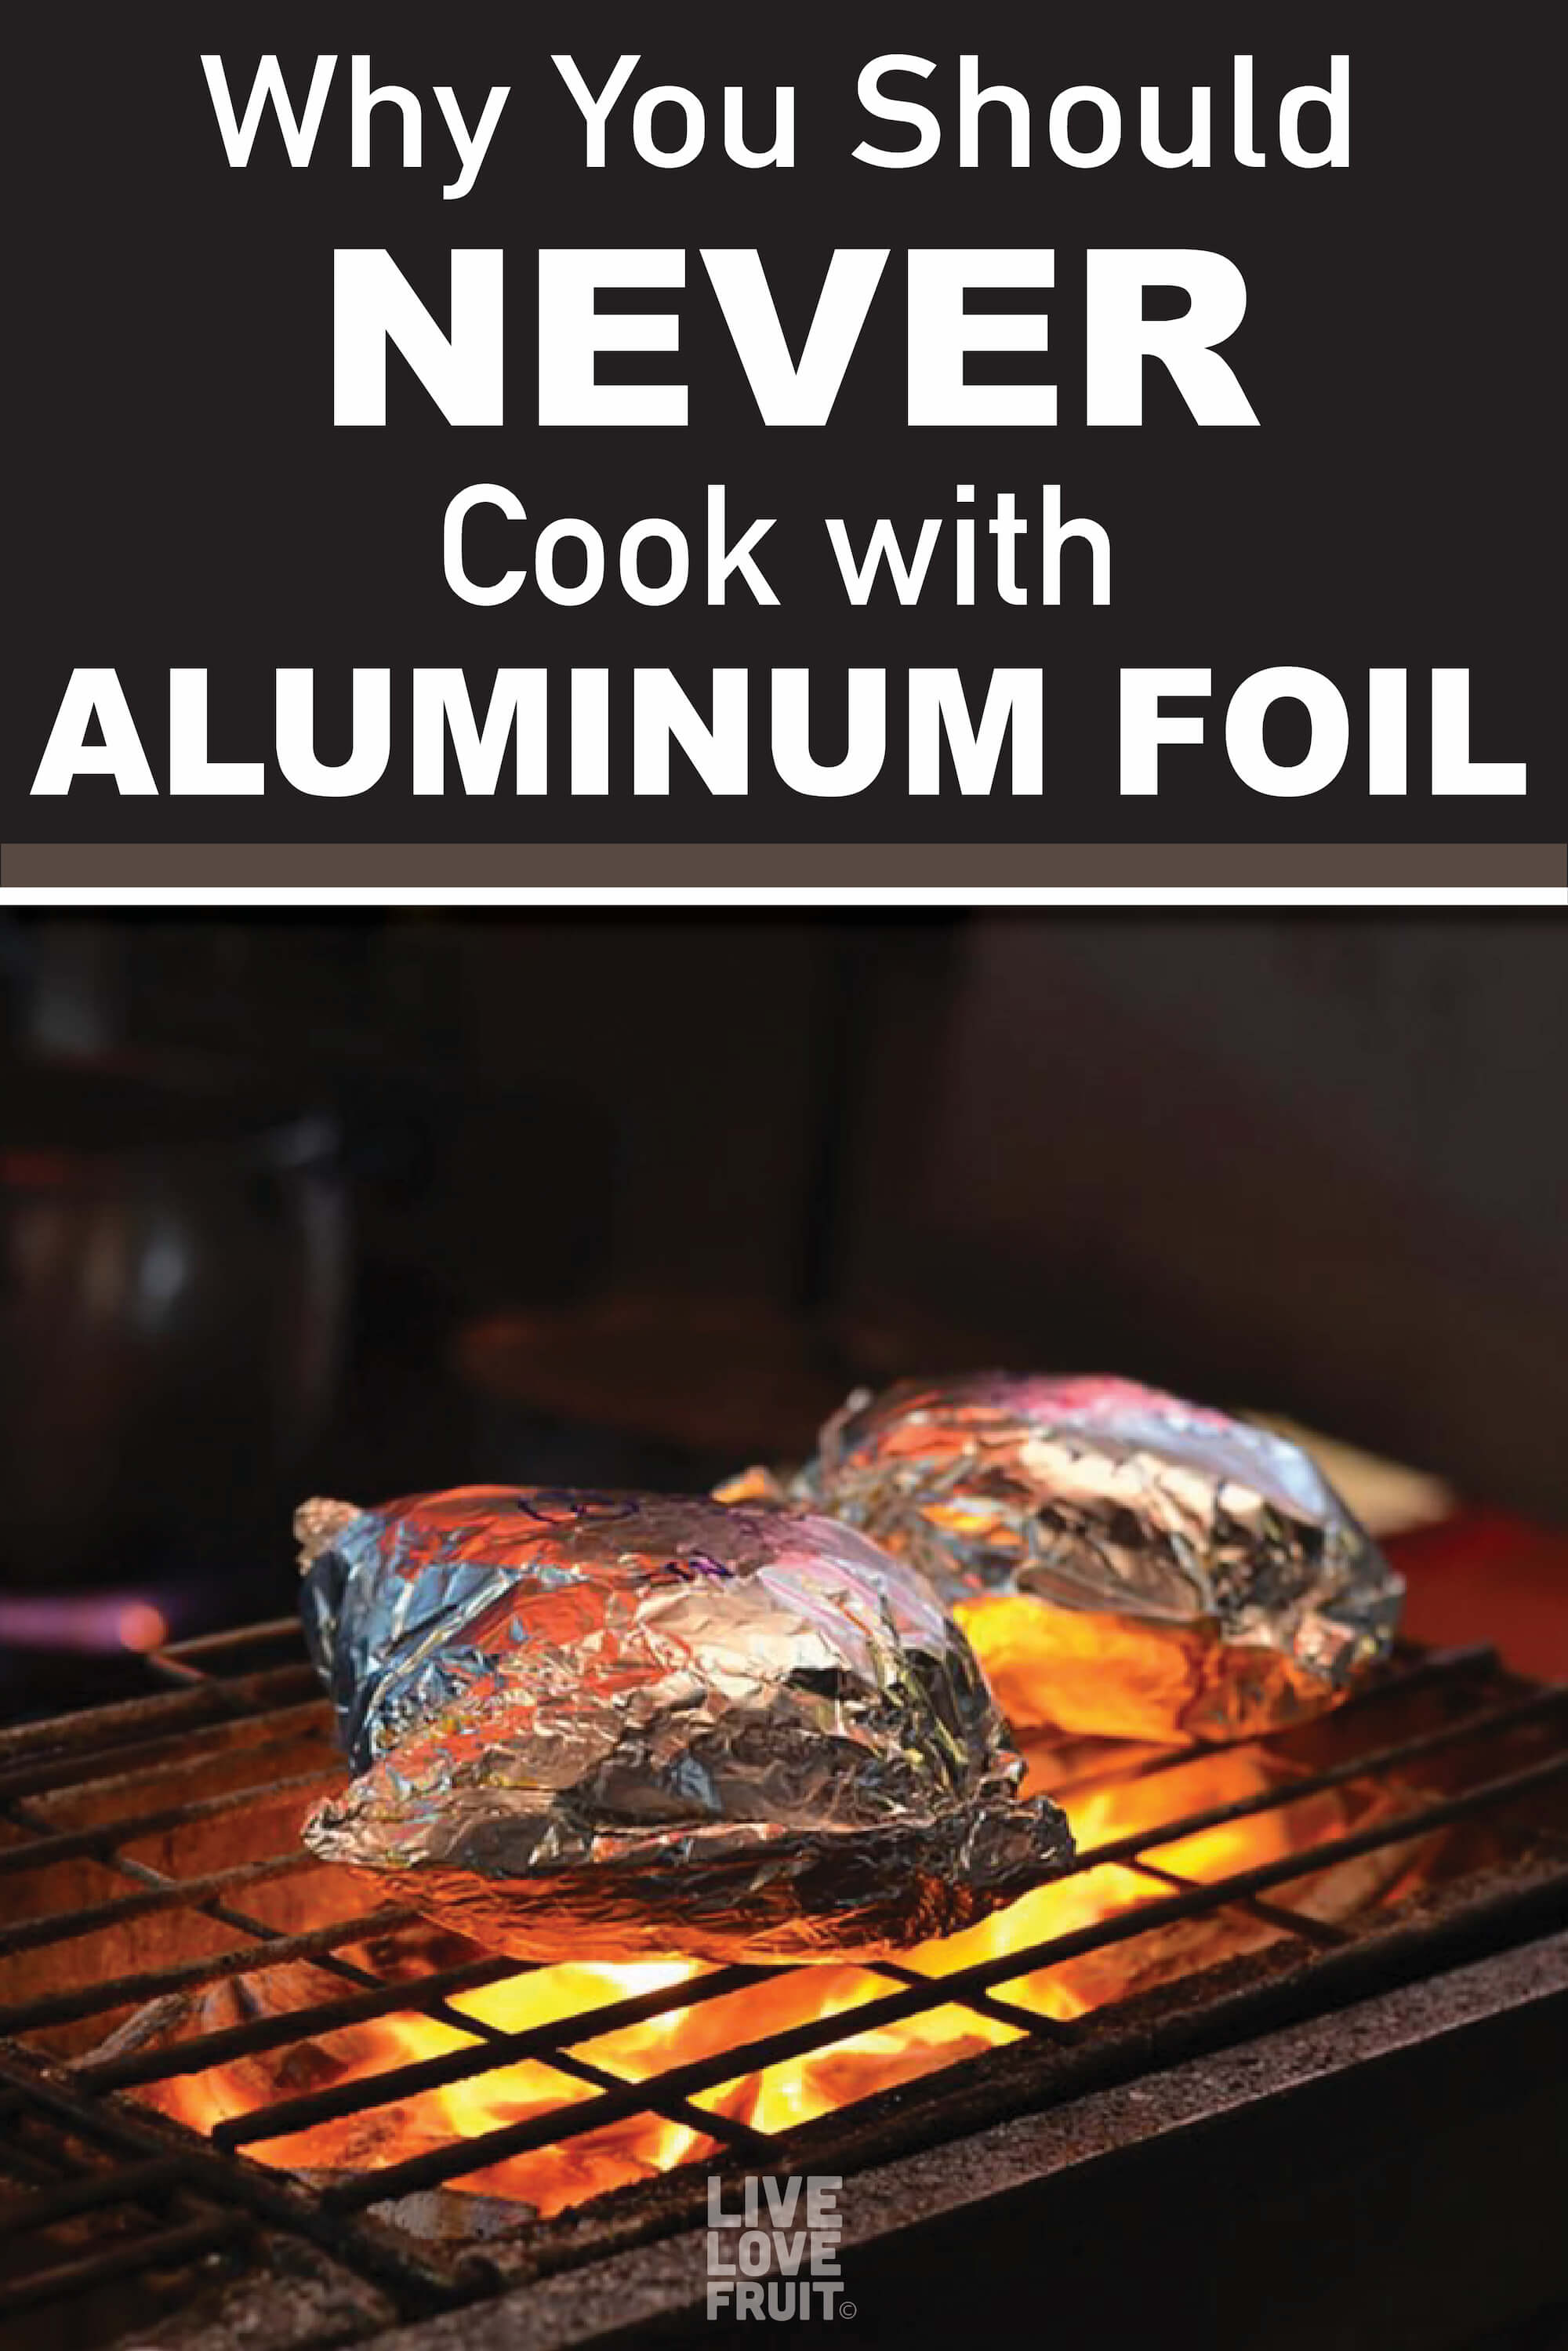 People have been cooking with aluminum foil for years, but only now are we discovering the health risks associated with it.